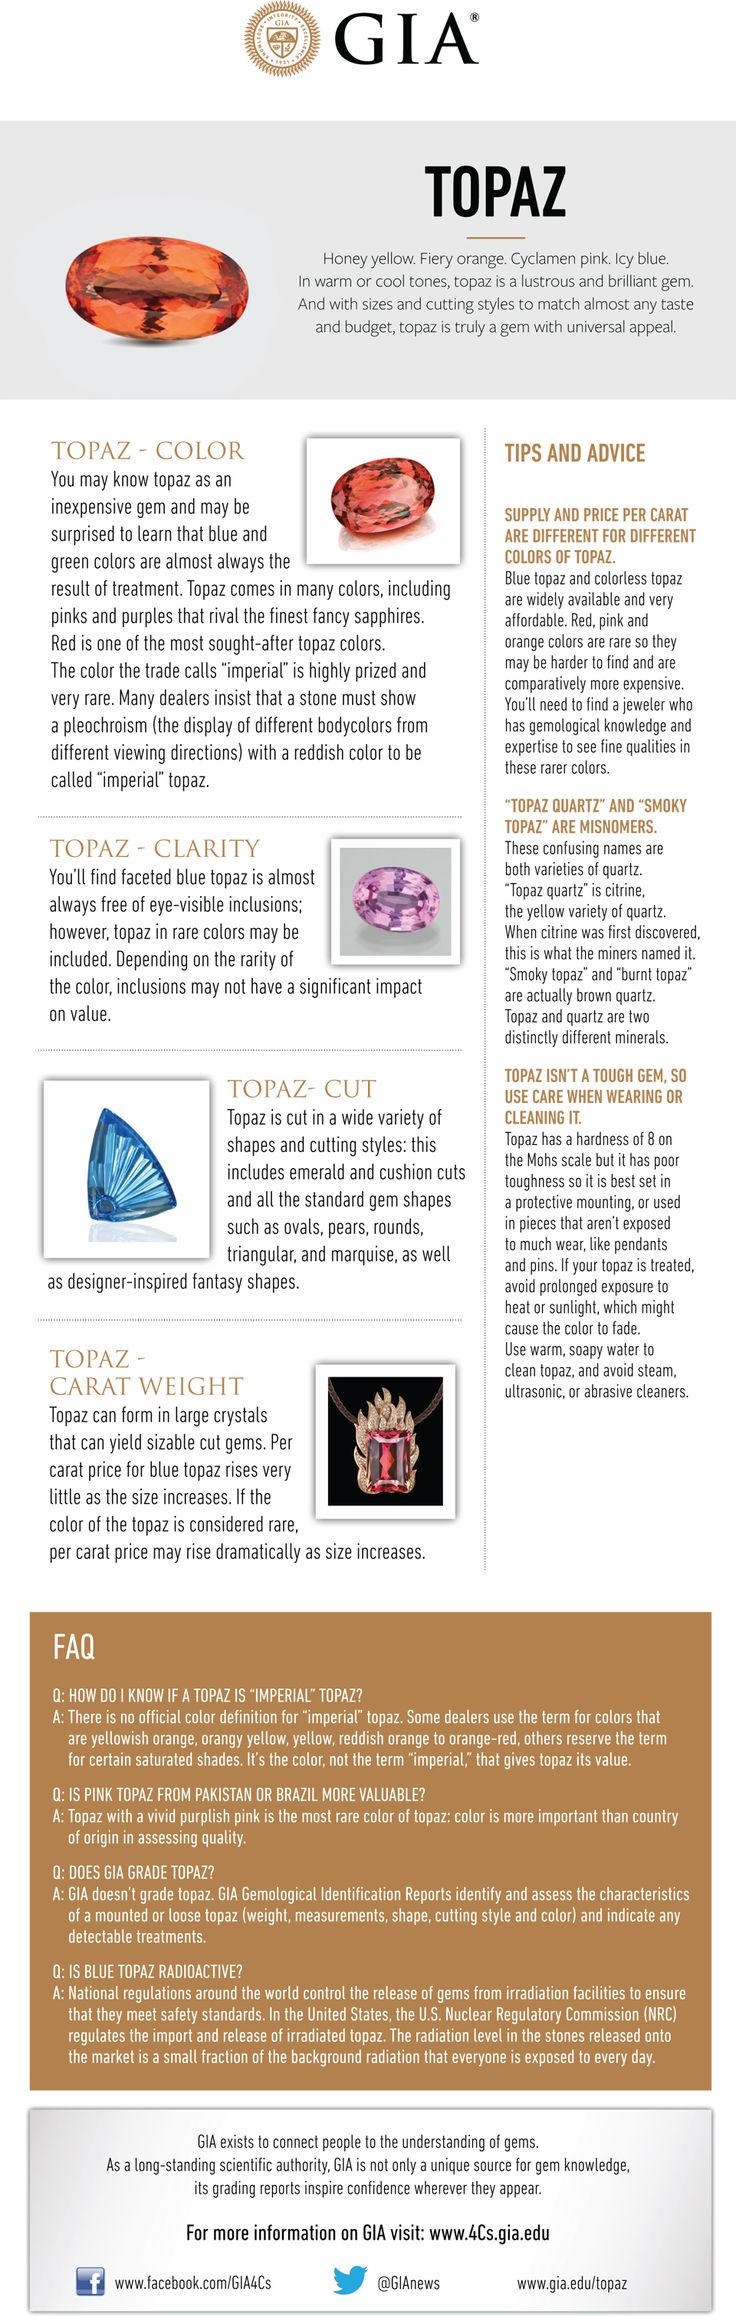 Topaz Buying Guide. GIA (021815)